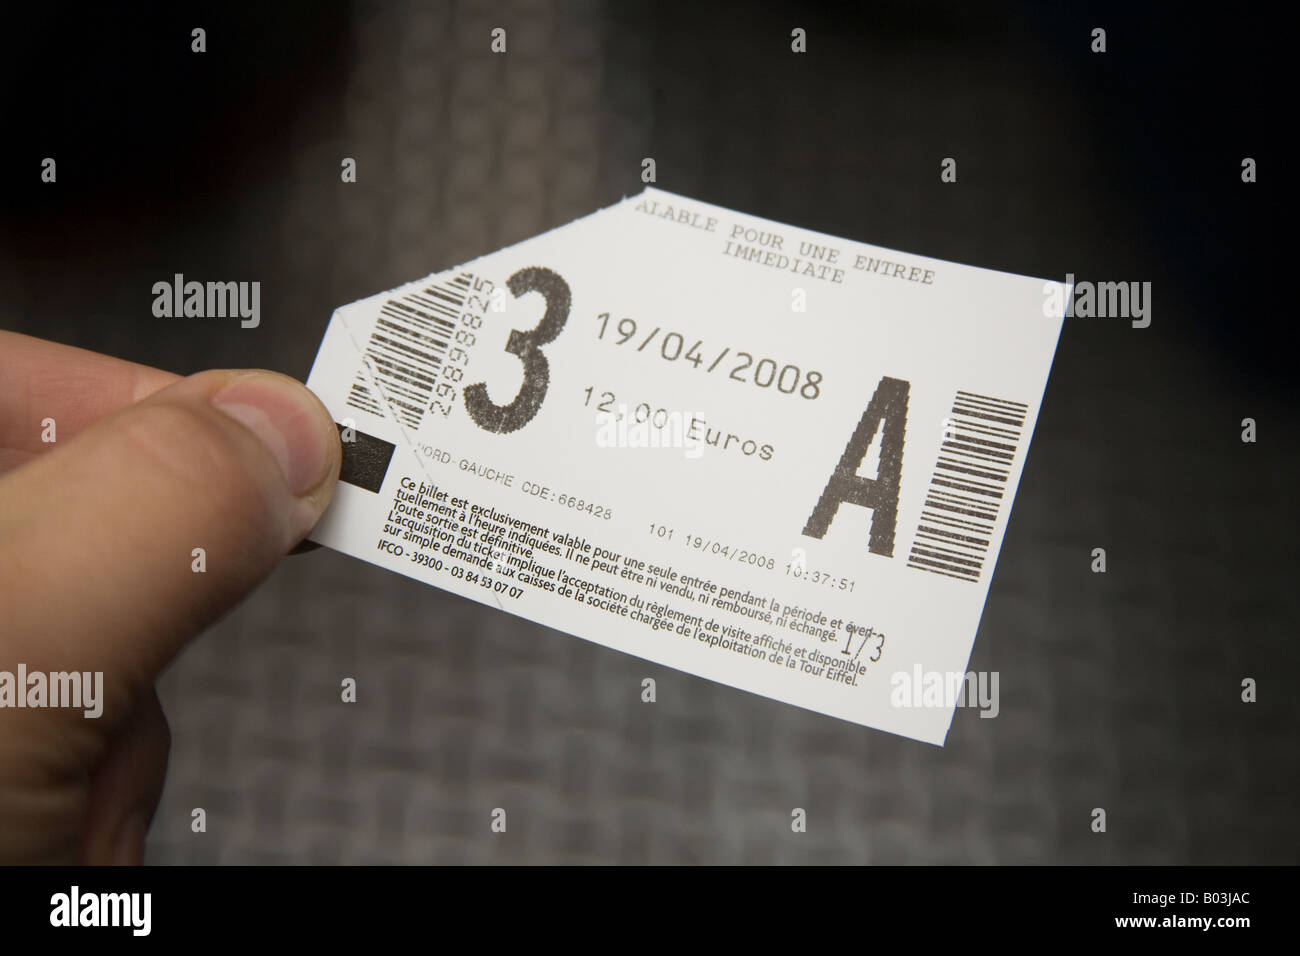 Ticket for the Eiffel Tower Paris France. - Stock Image